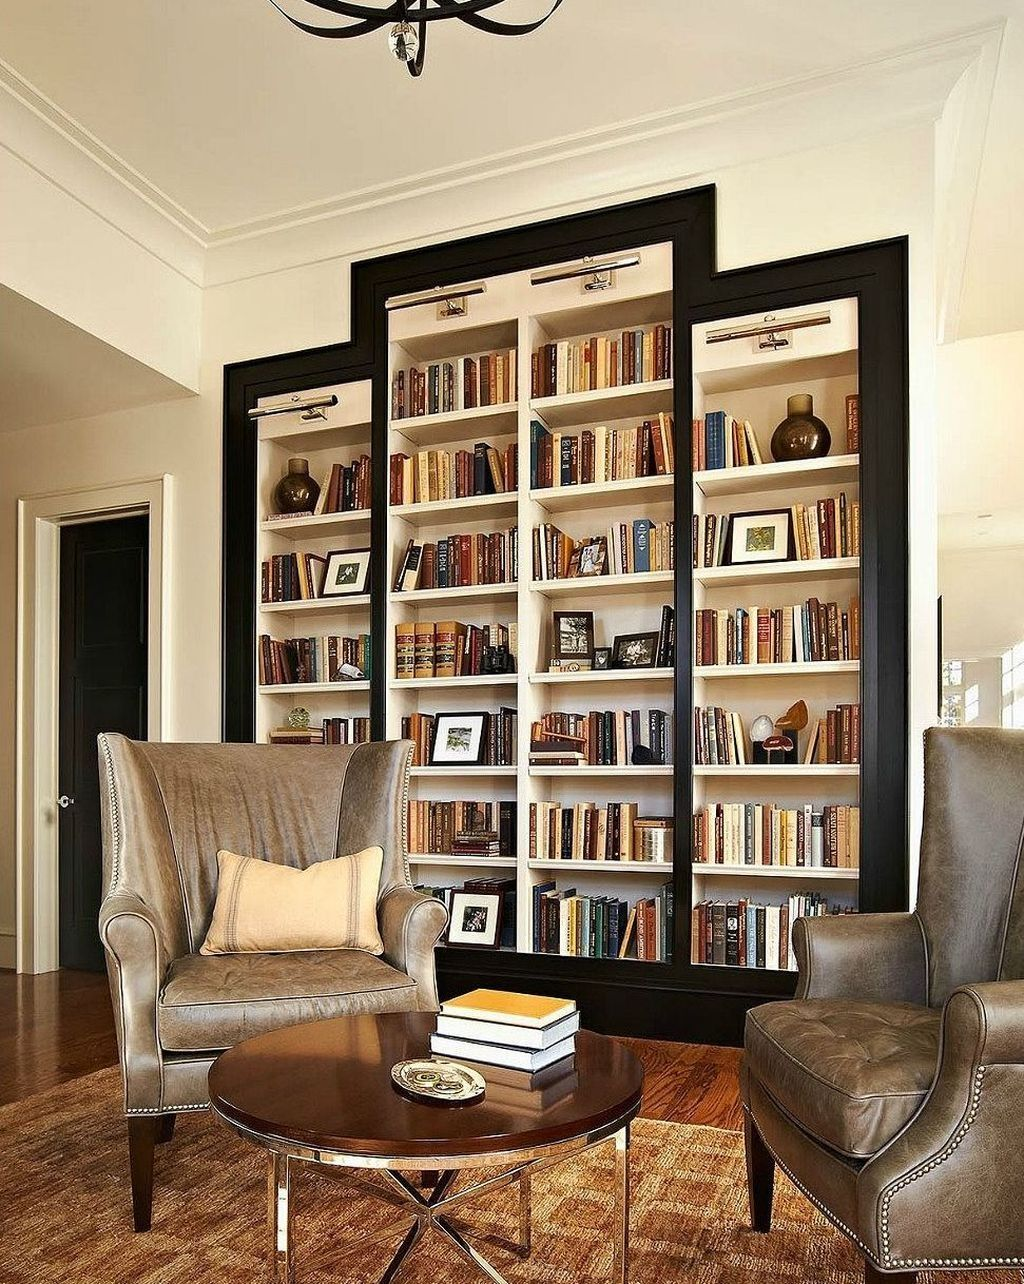 46 Catchy Ways To Decorate Your Home With Books